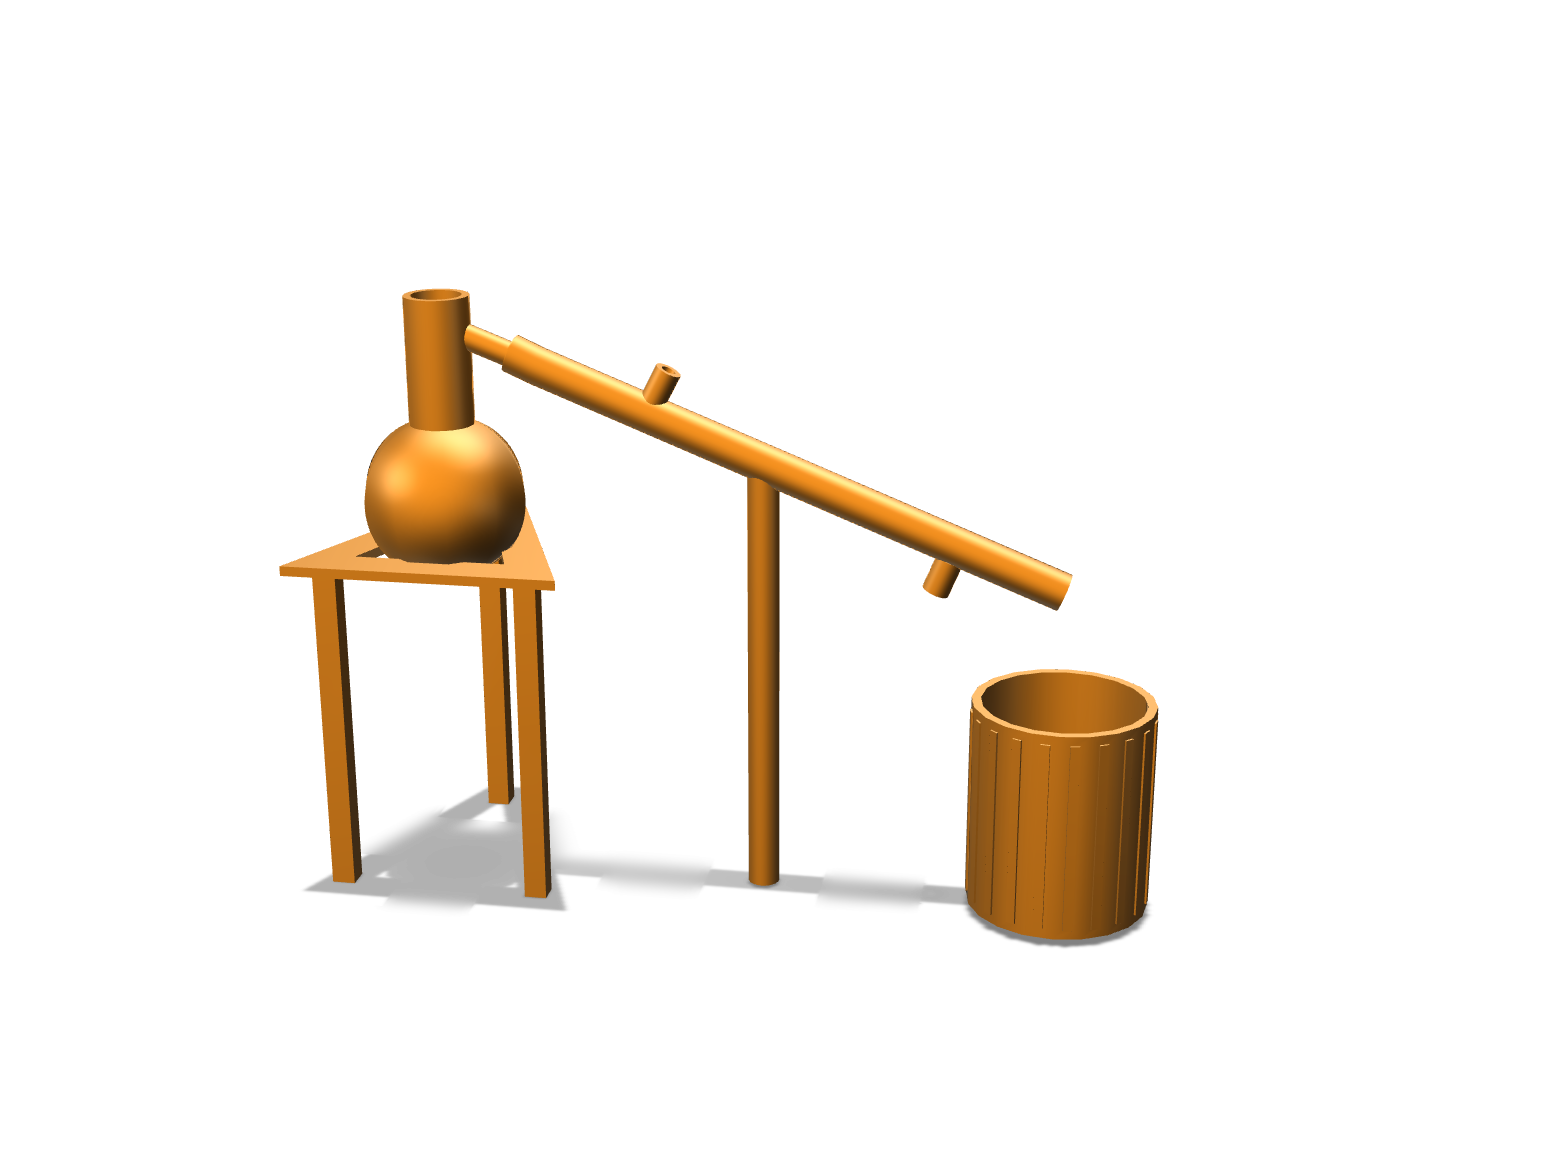 Distillation modle  - 3D design by elisa.pinkerrego.22 on Nov 12, 2017